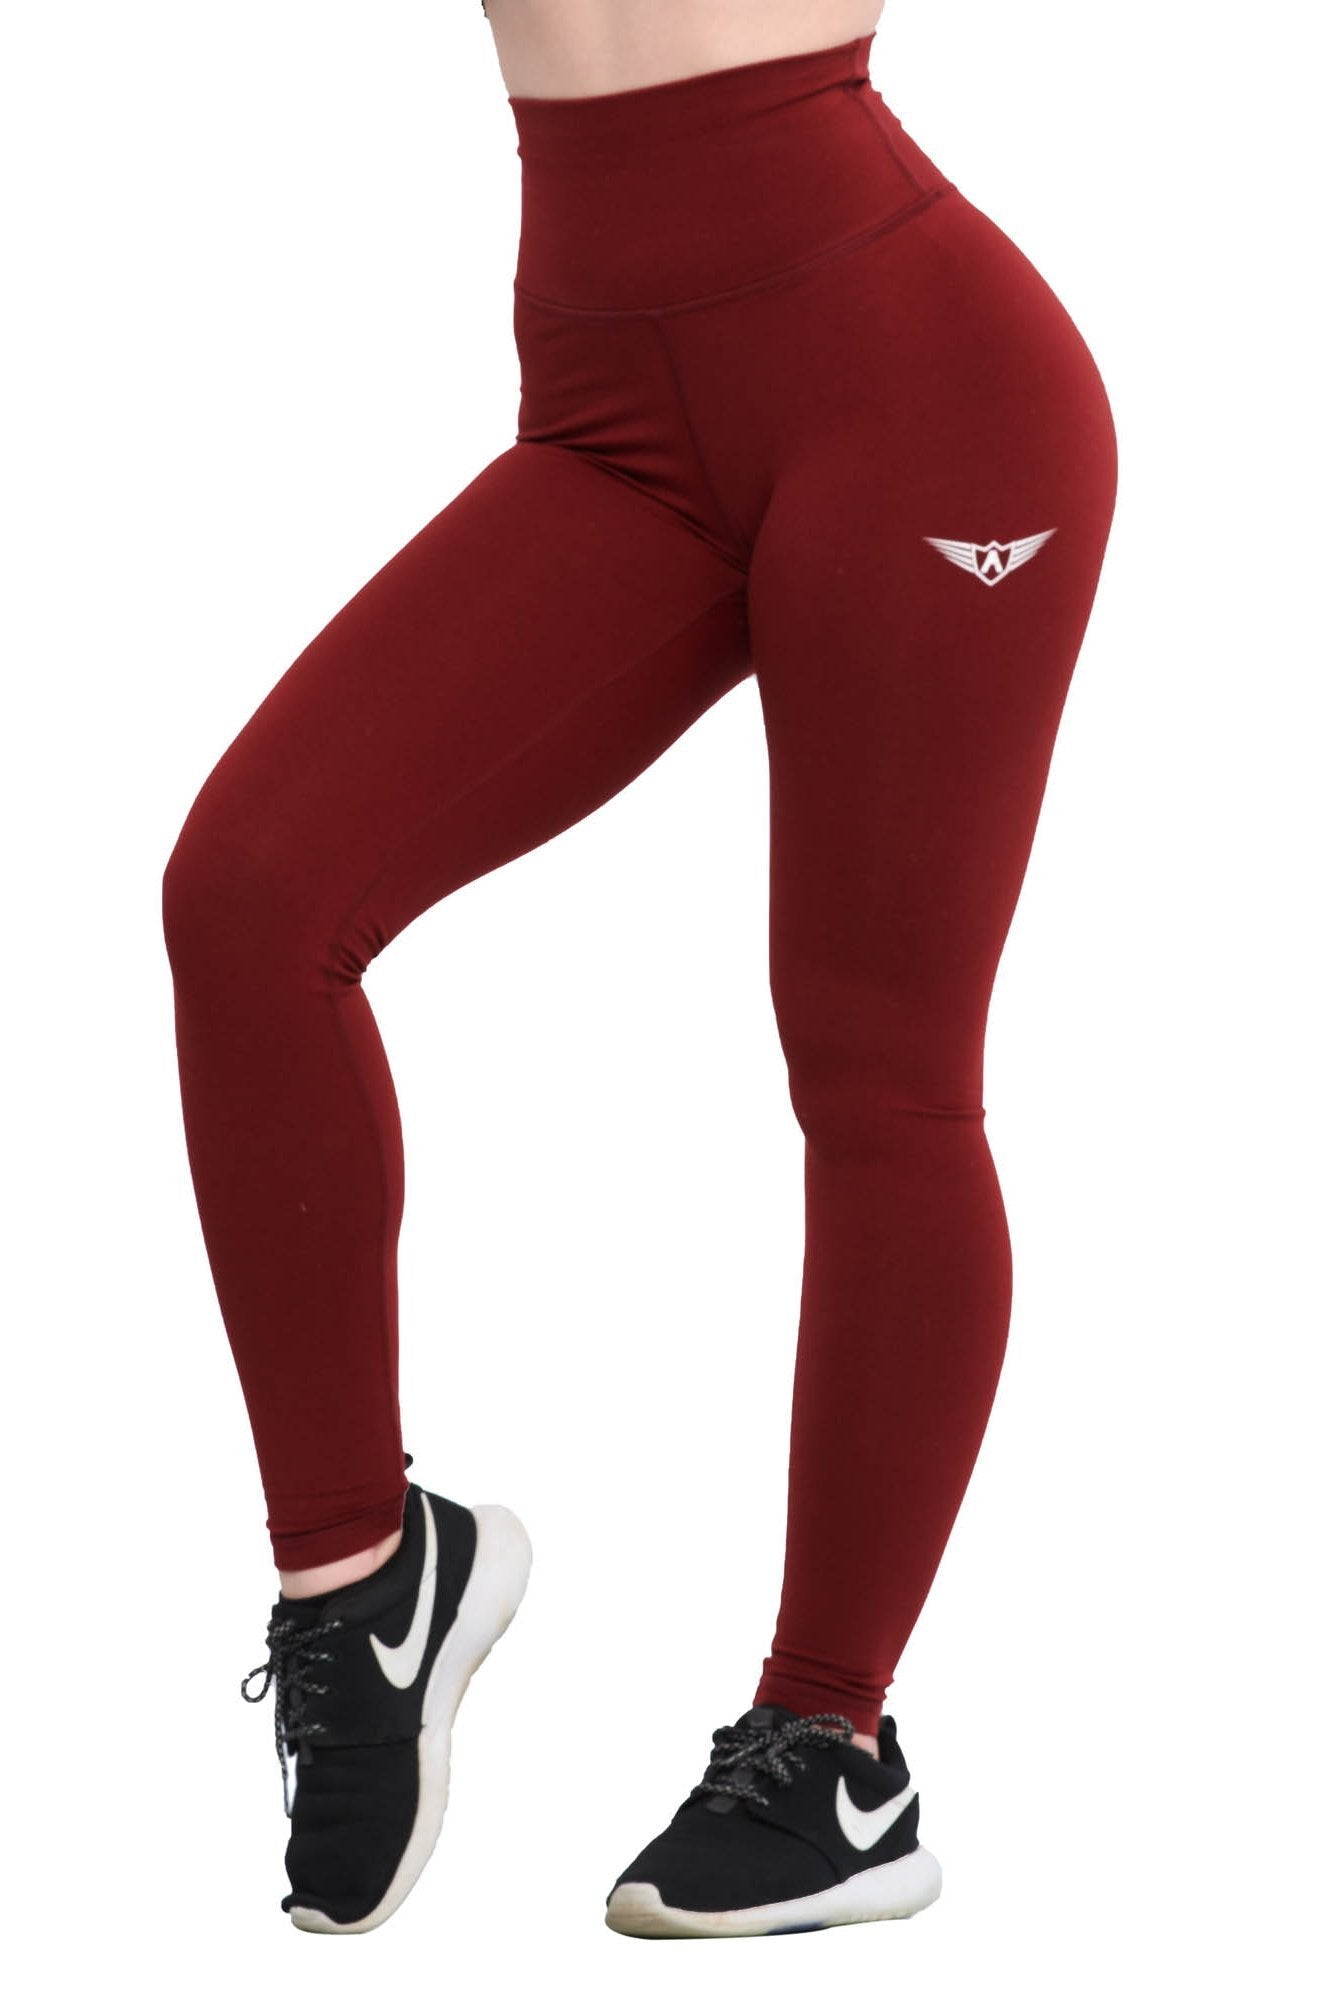 MAROON FEATHER HIGH WAIST COMPRESSION LEGGINGS - womens activewear leggings